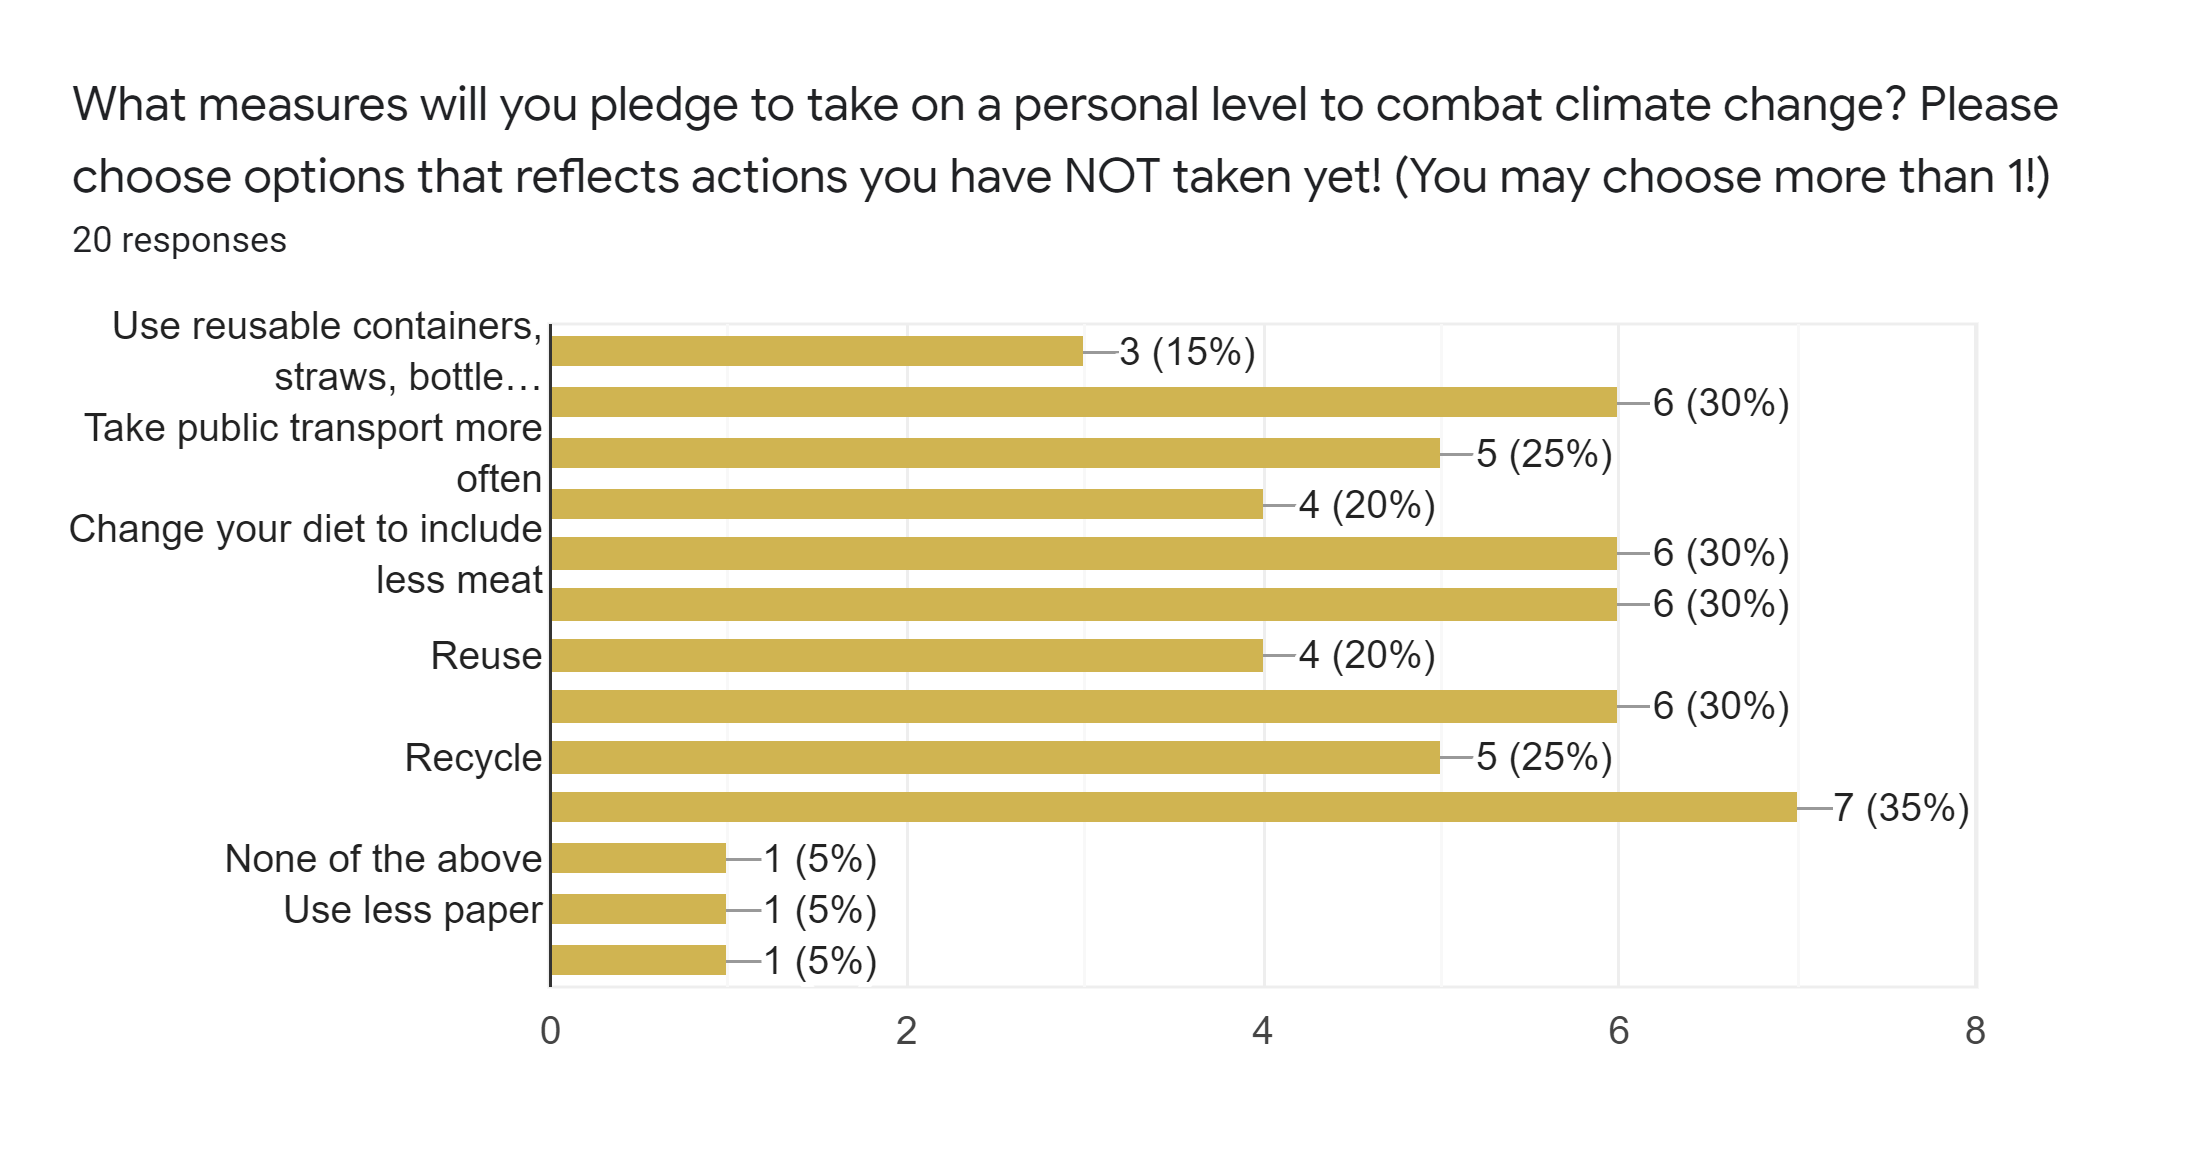 19 of 20 respondents were willing to make at least one change to their current lifestyle